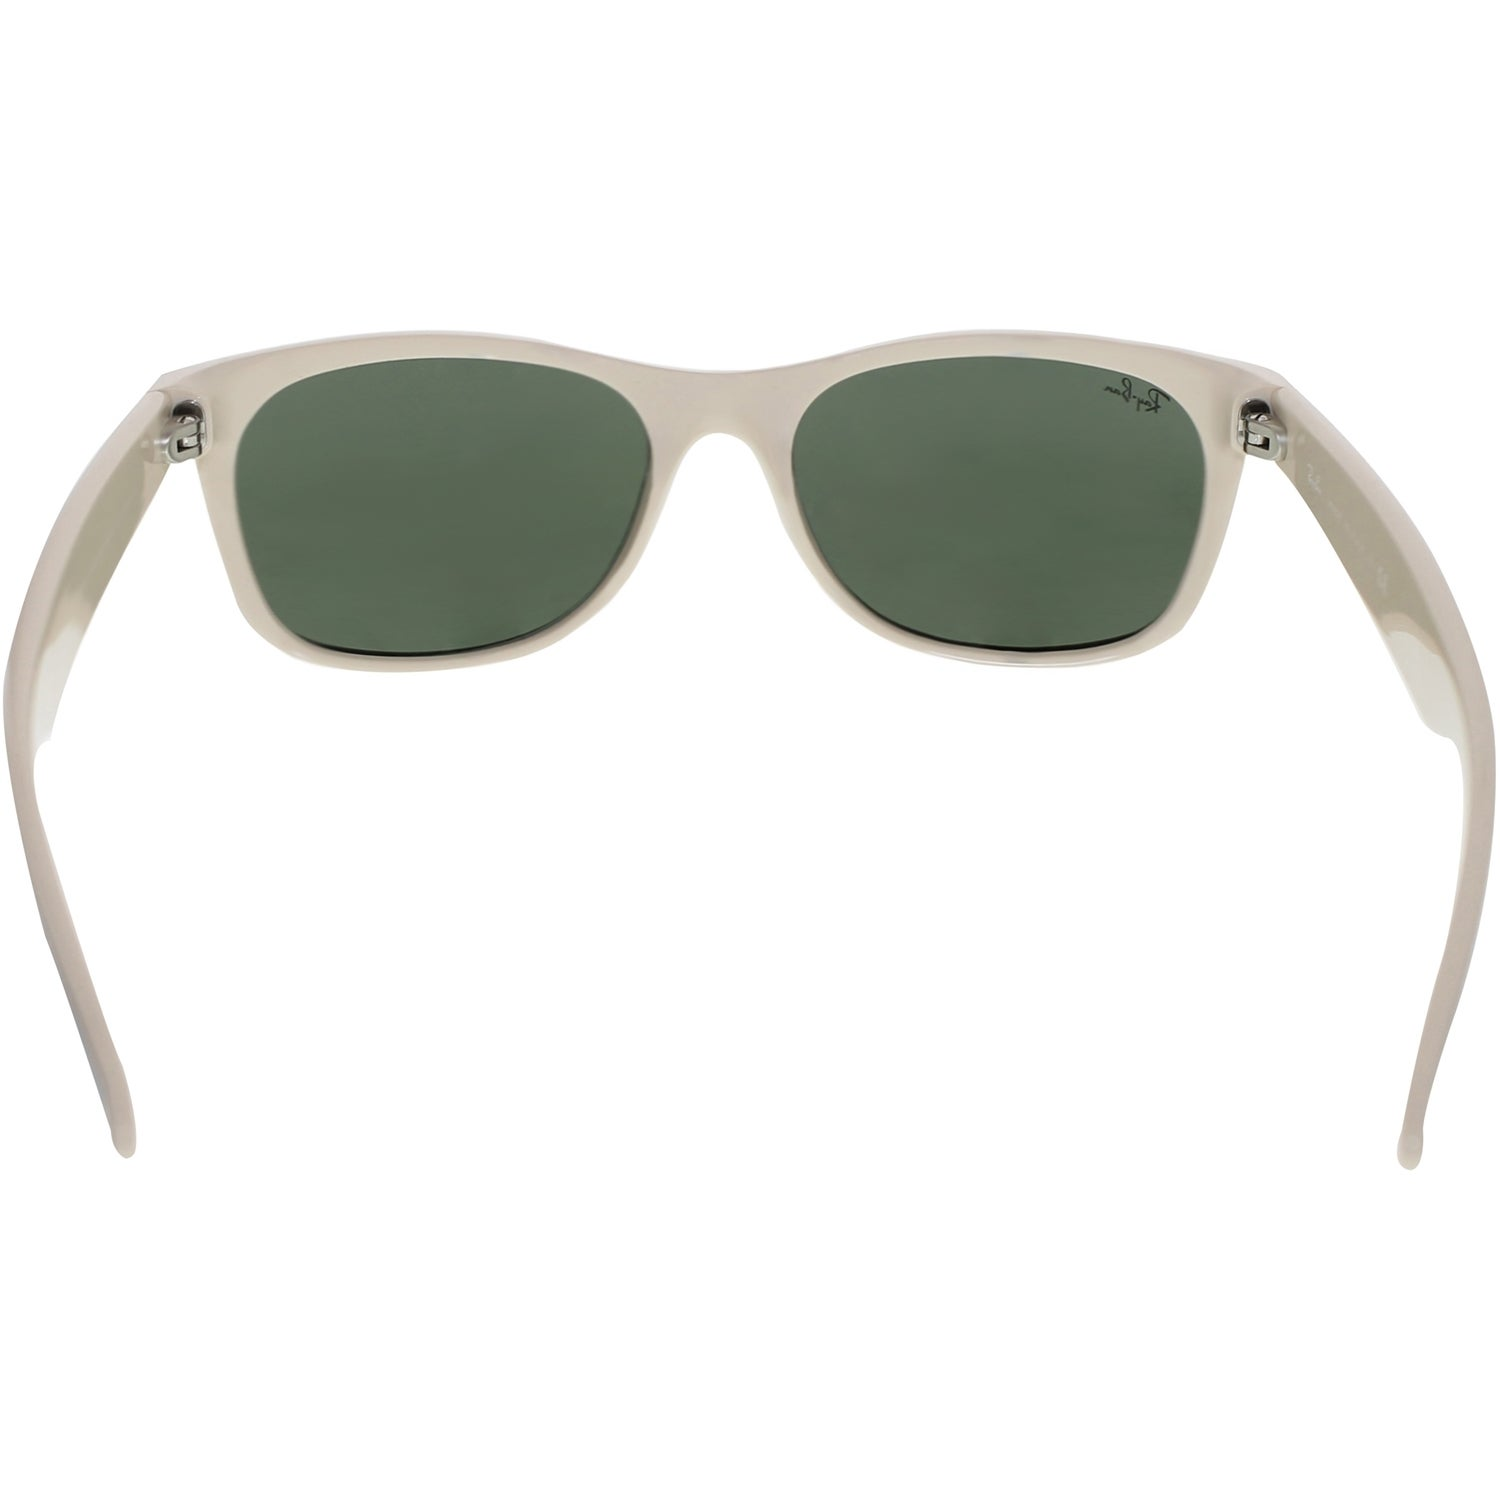 c792a982184 Shop Ray-Ban RB2132 875 New Wayfarer Color Mix Black Light Brown Frame  Green Classic 55mm Lens Sunglasses - Free Shipping Today - Overstock -  14442378